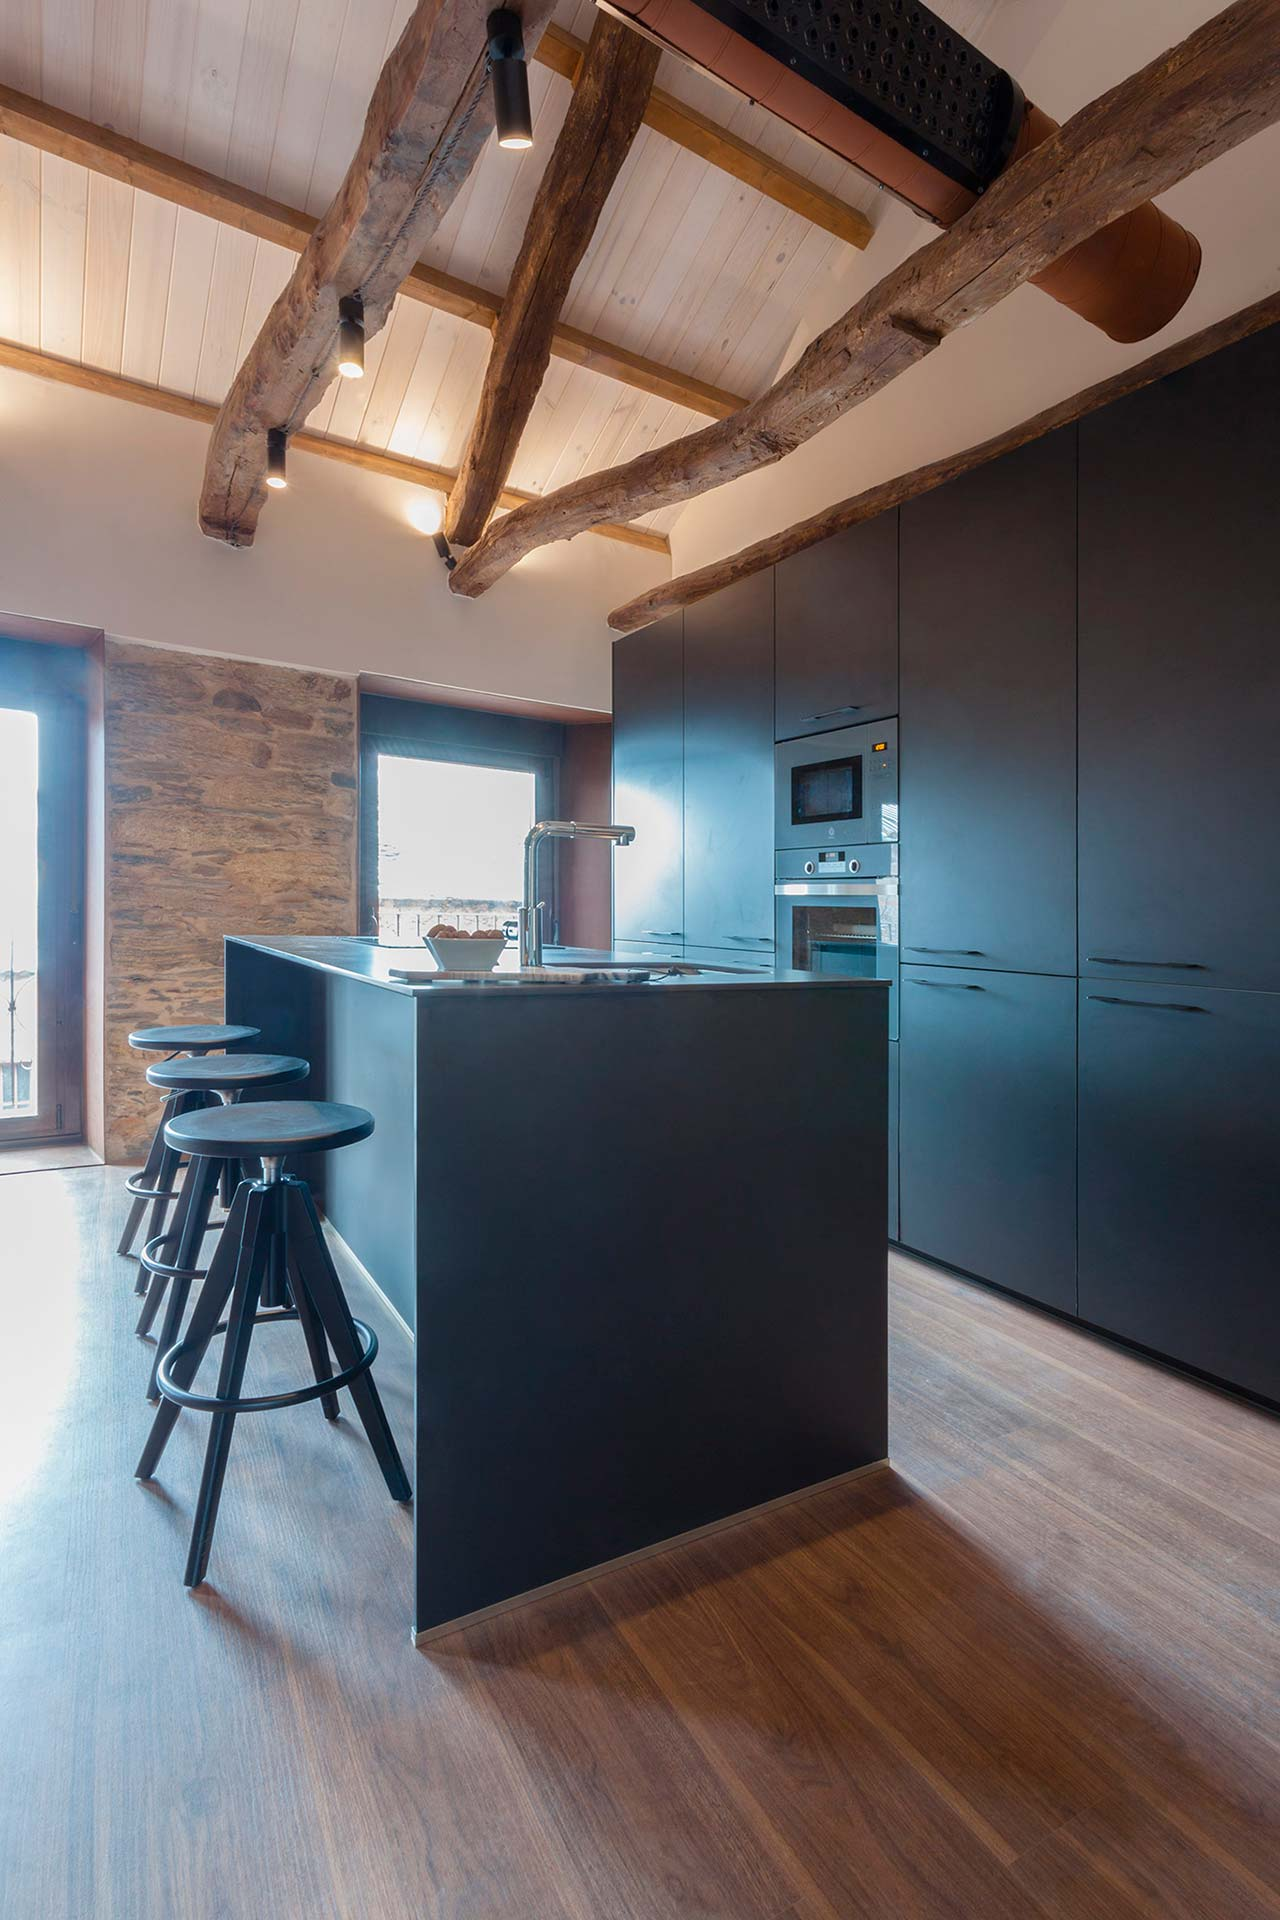 Santos Kitchens in renovated homes, by Andrea Muñoz Diseño